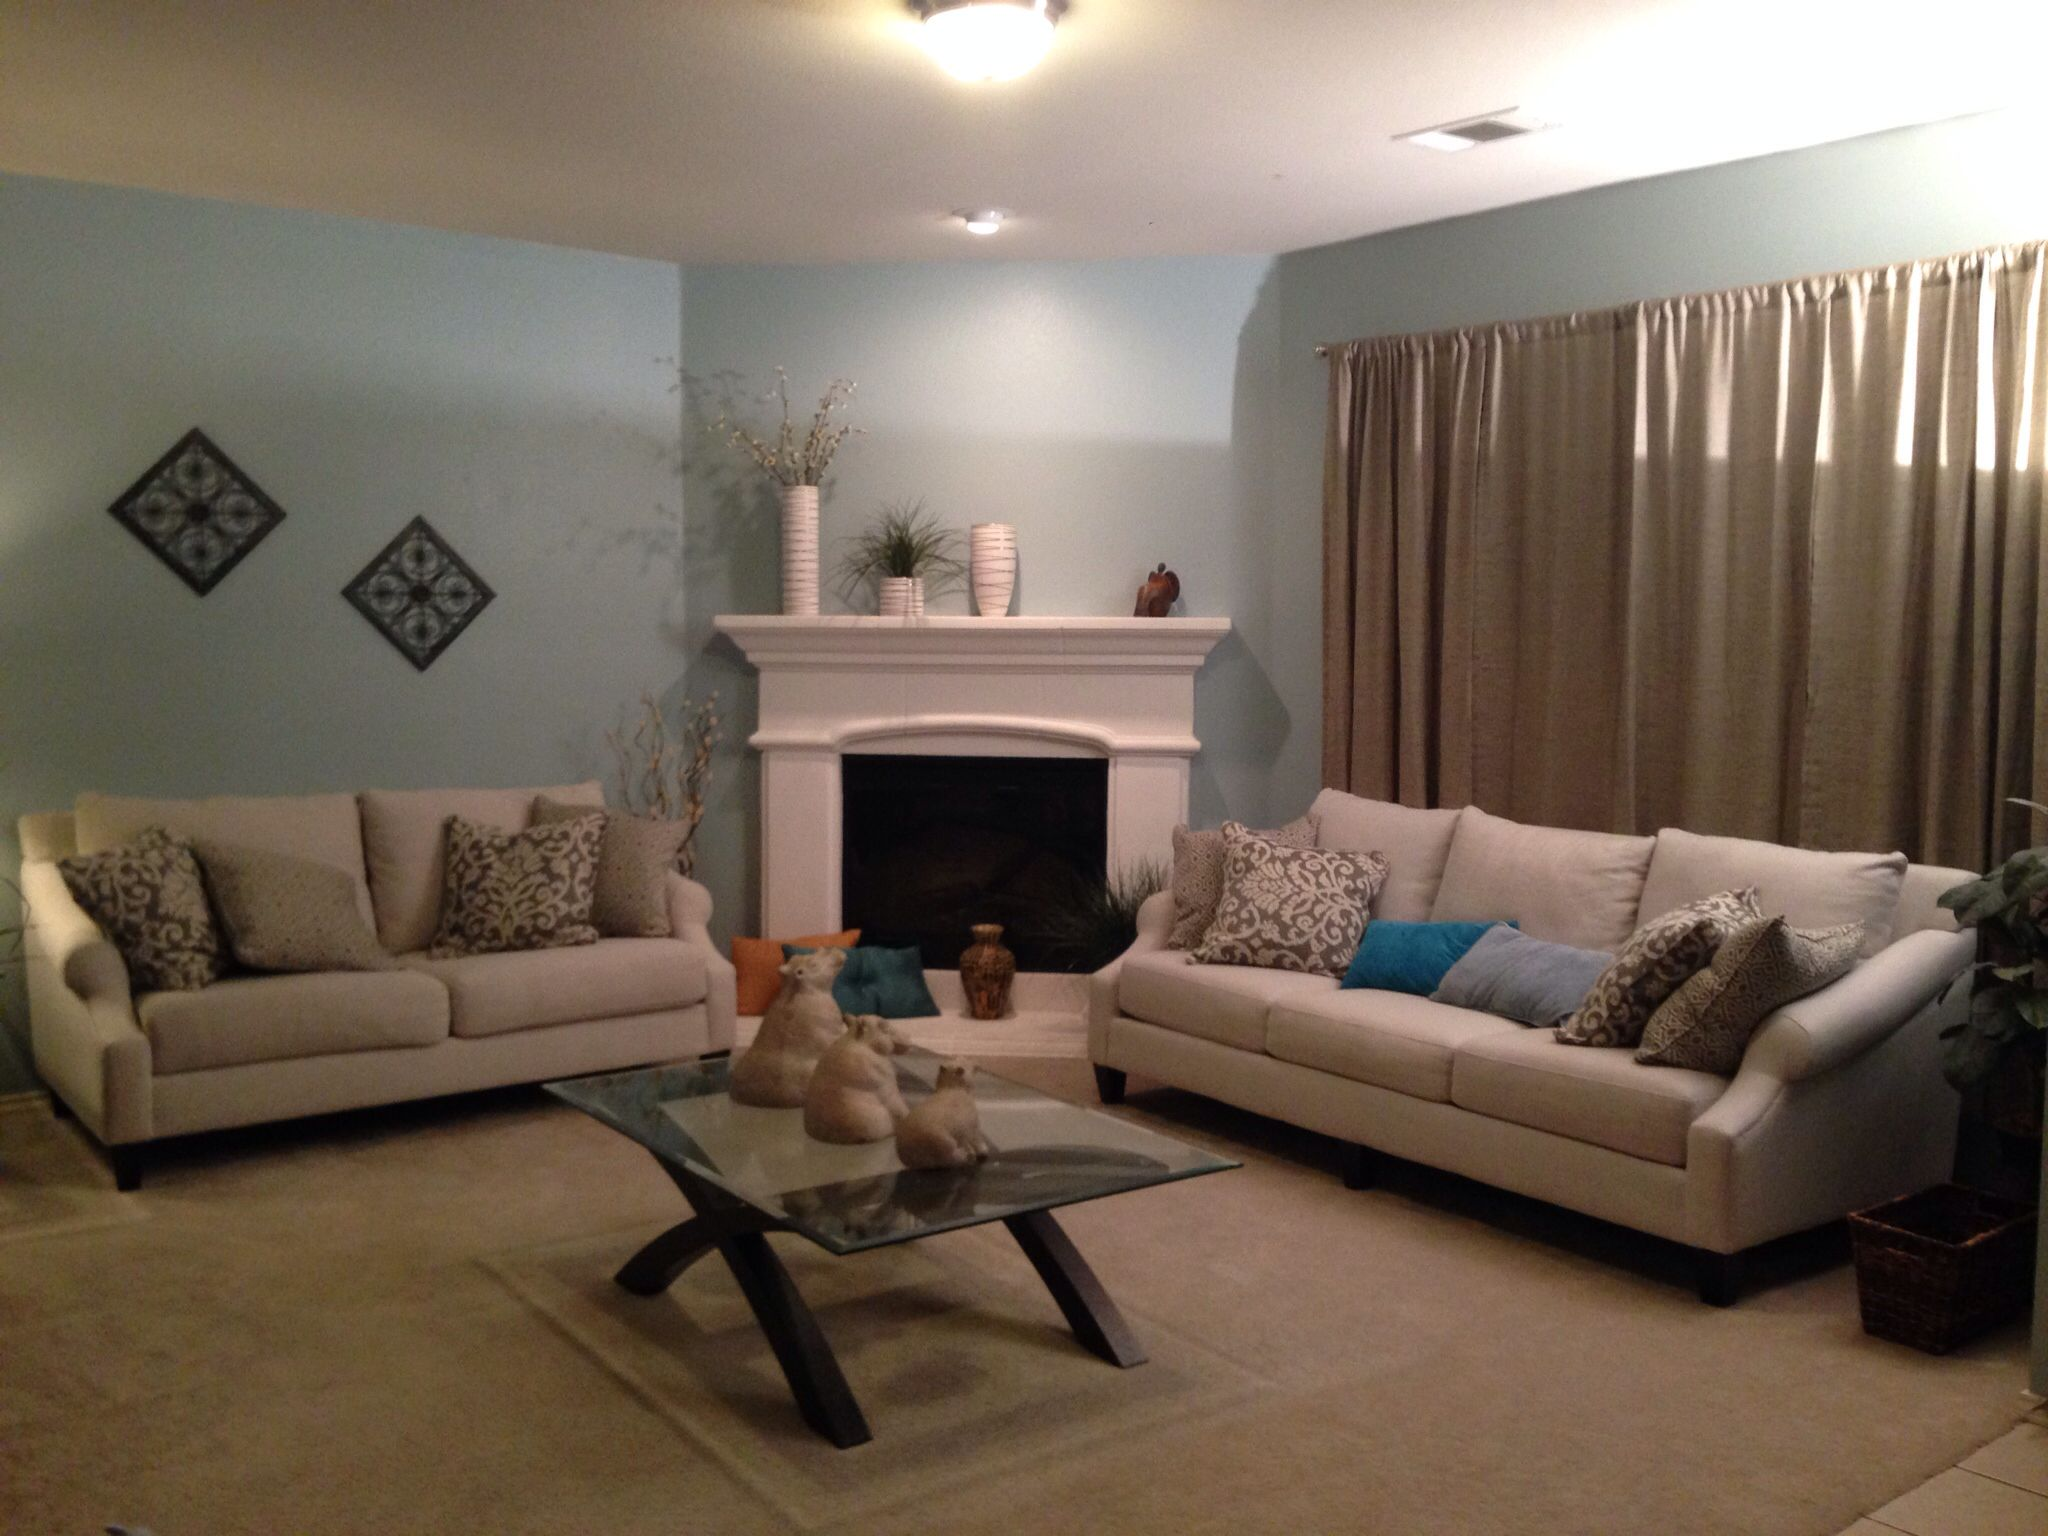 My living room. I used Behr paint from Home Depot called \